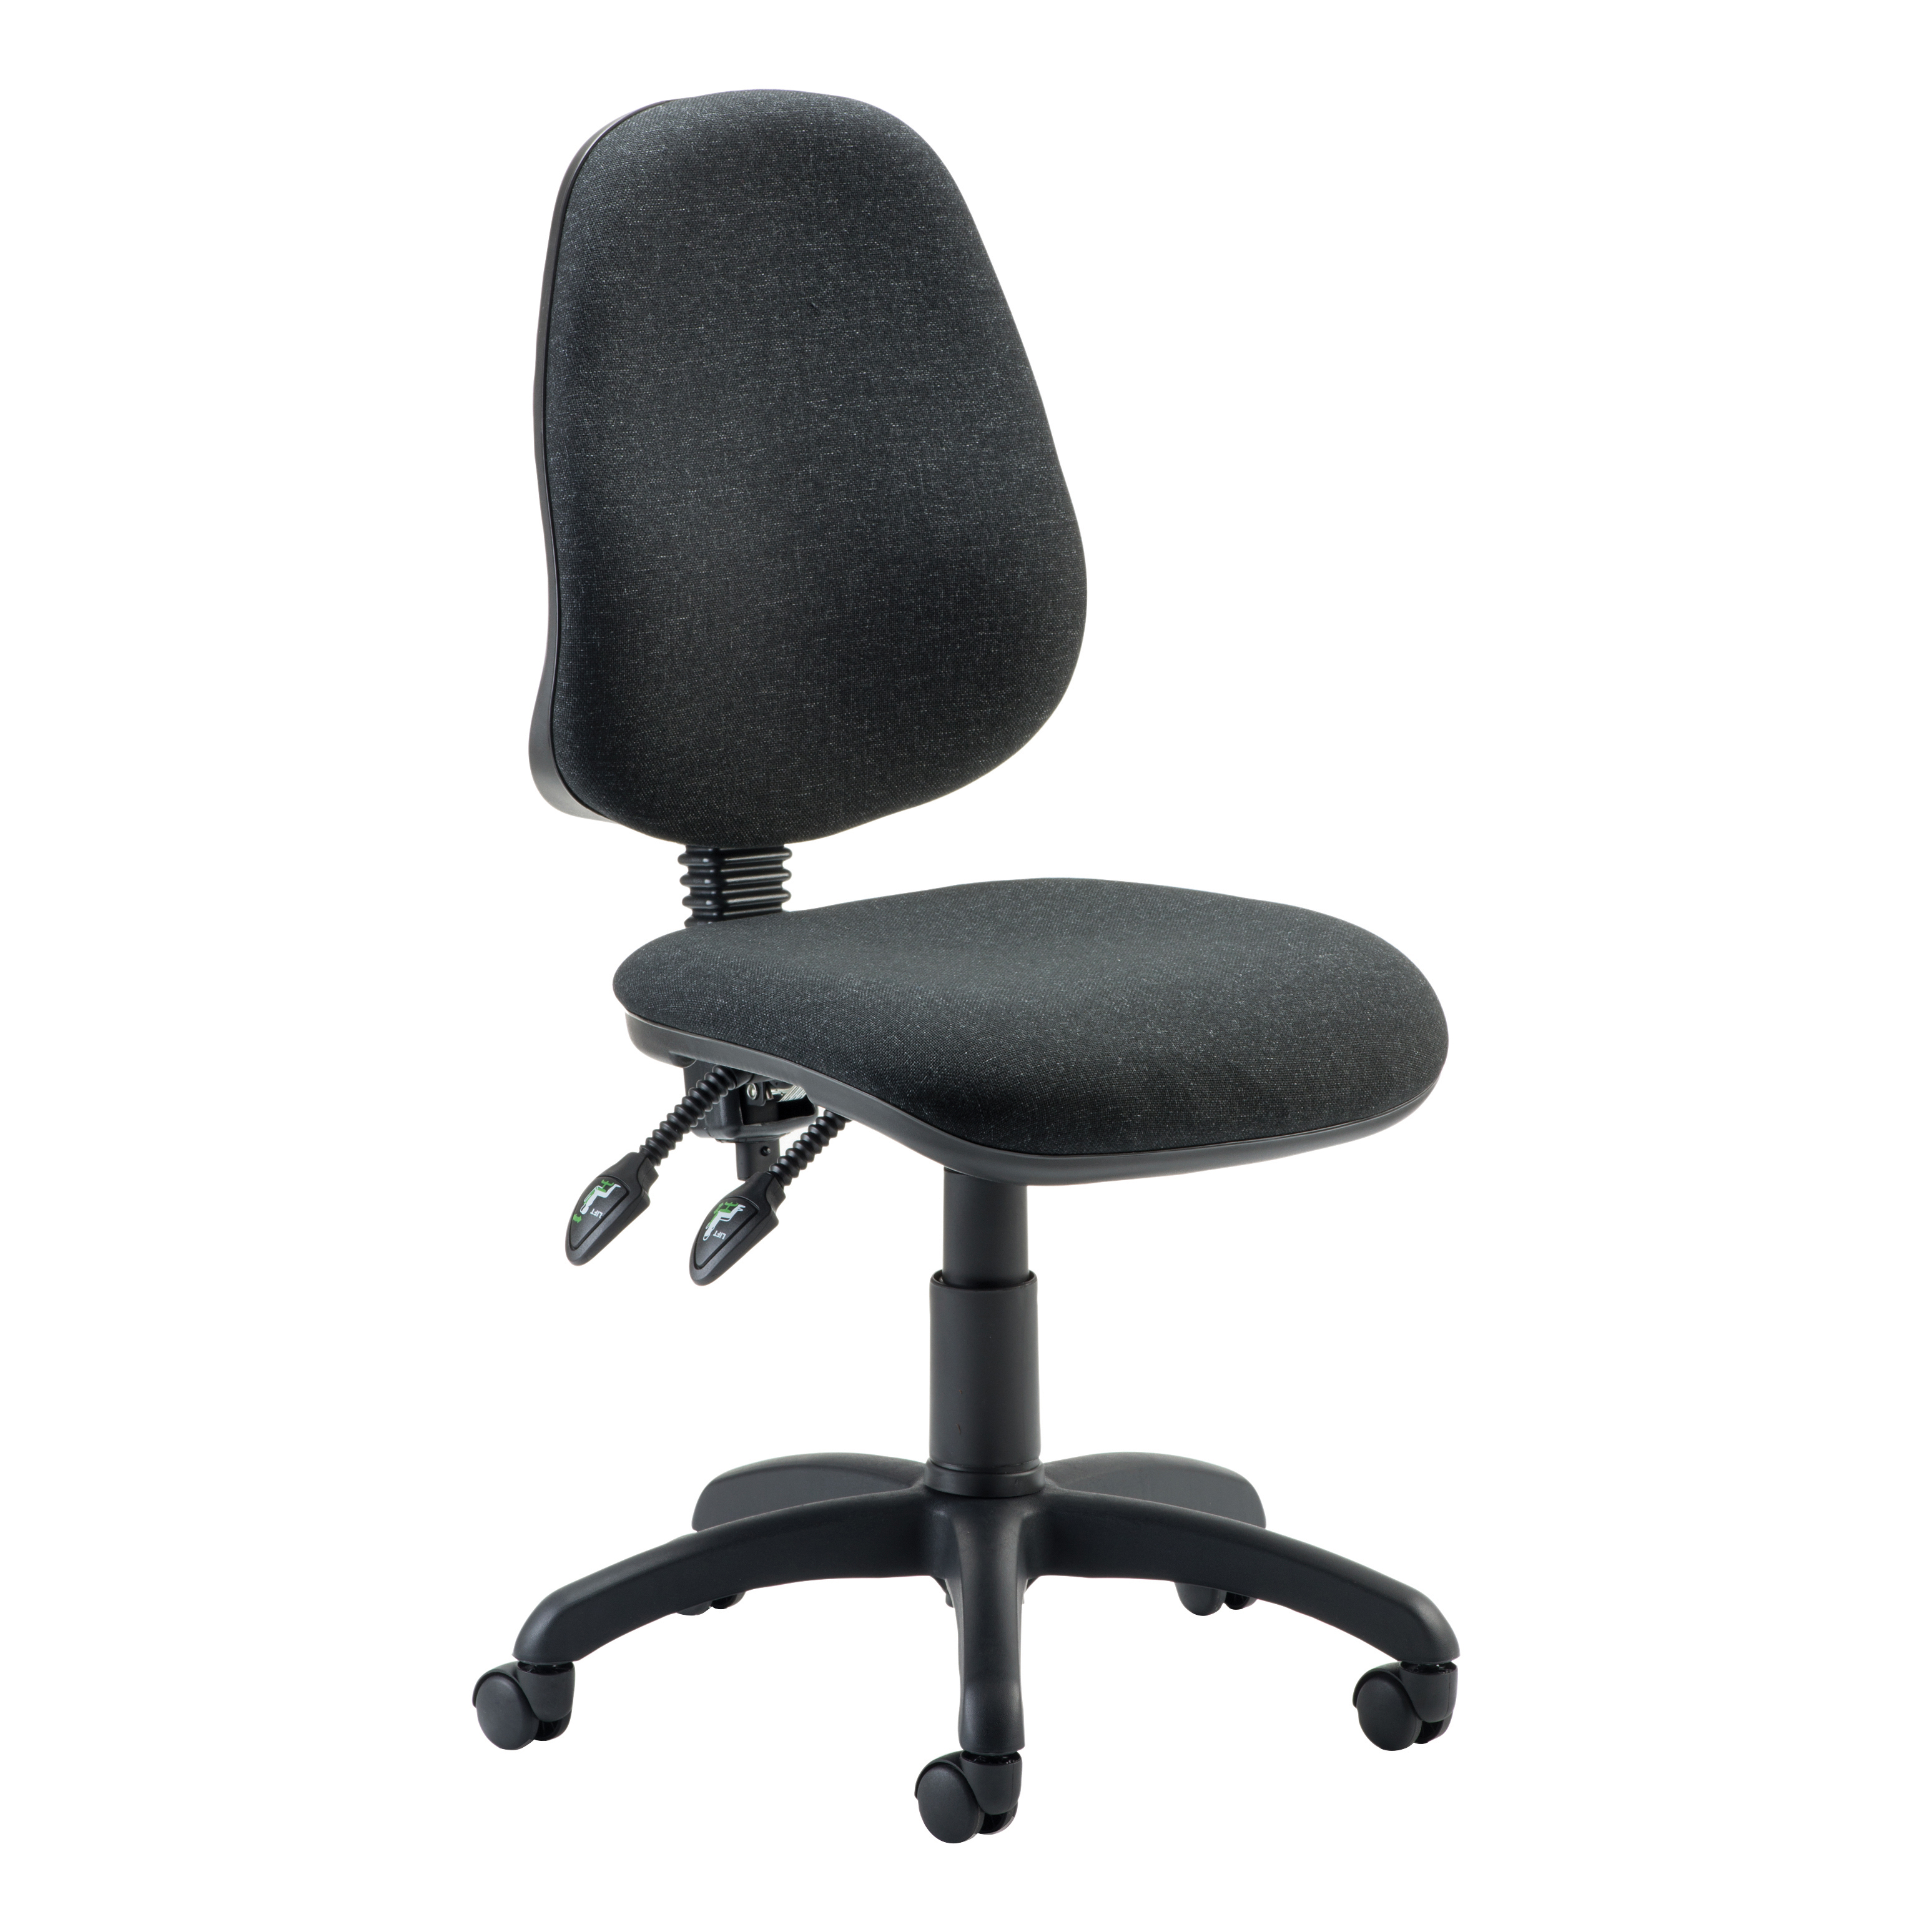 Trexus 2 Lever High Back Permanent Contact Operators Chair Charcoal 480x450x490-590mm Ref OP000026